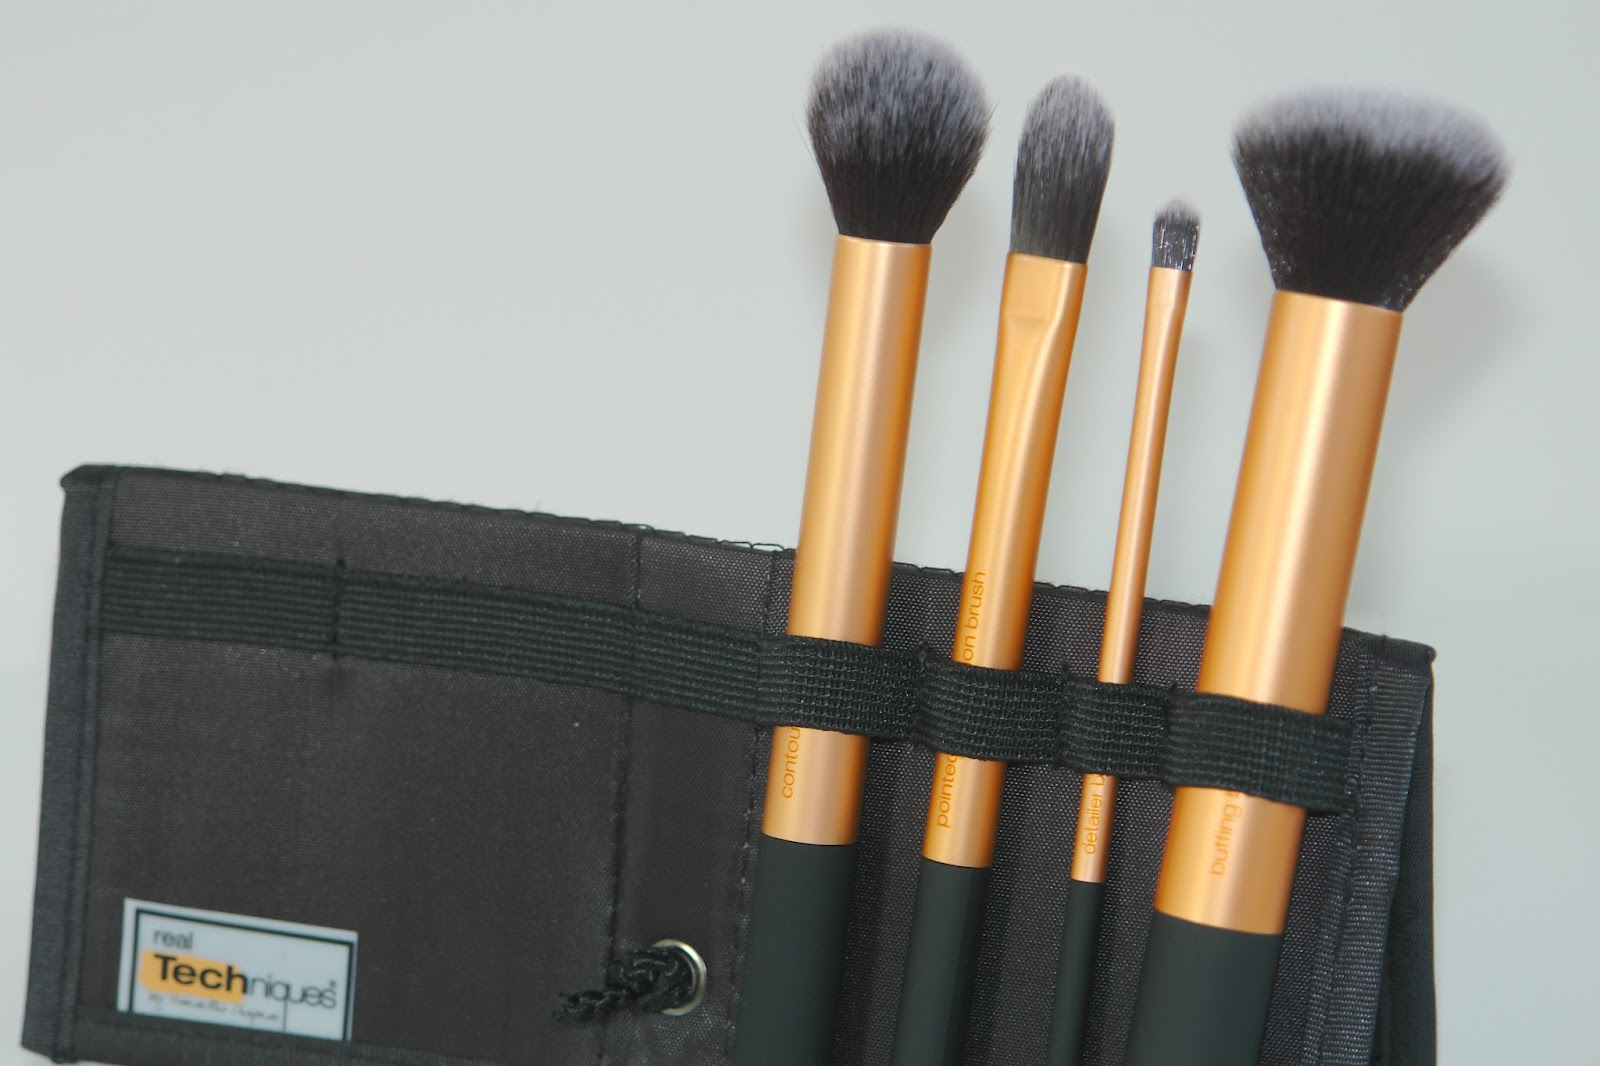 Real Techniques Core Collection review, brushes, make up, Real Techniques, review, blogger, UK, Contour Brush, Pointed Foundation Brush, RT, Buffing Brush, Detailer Brush